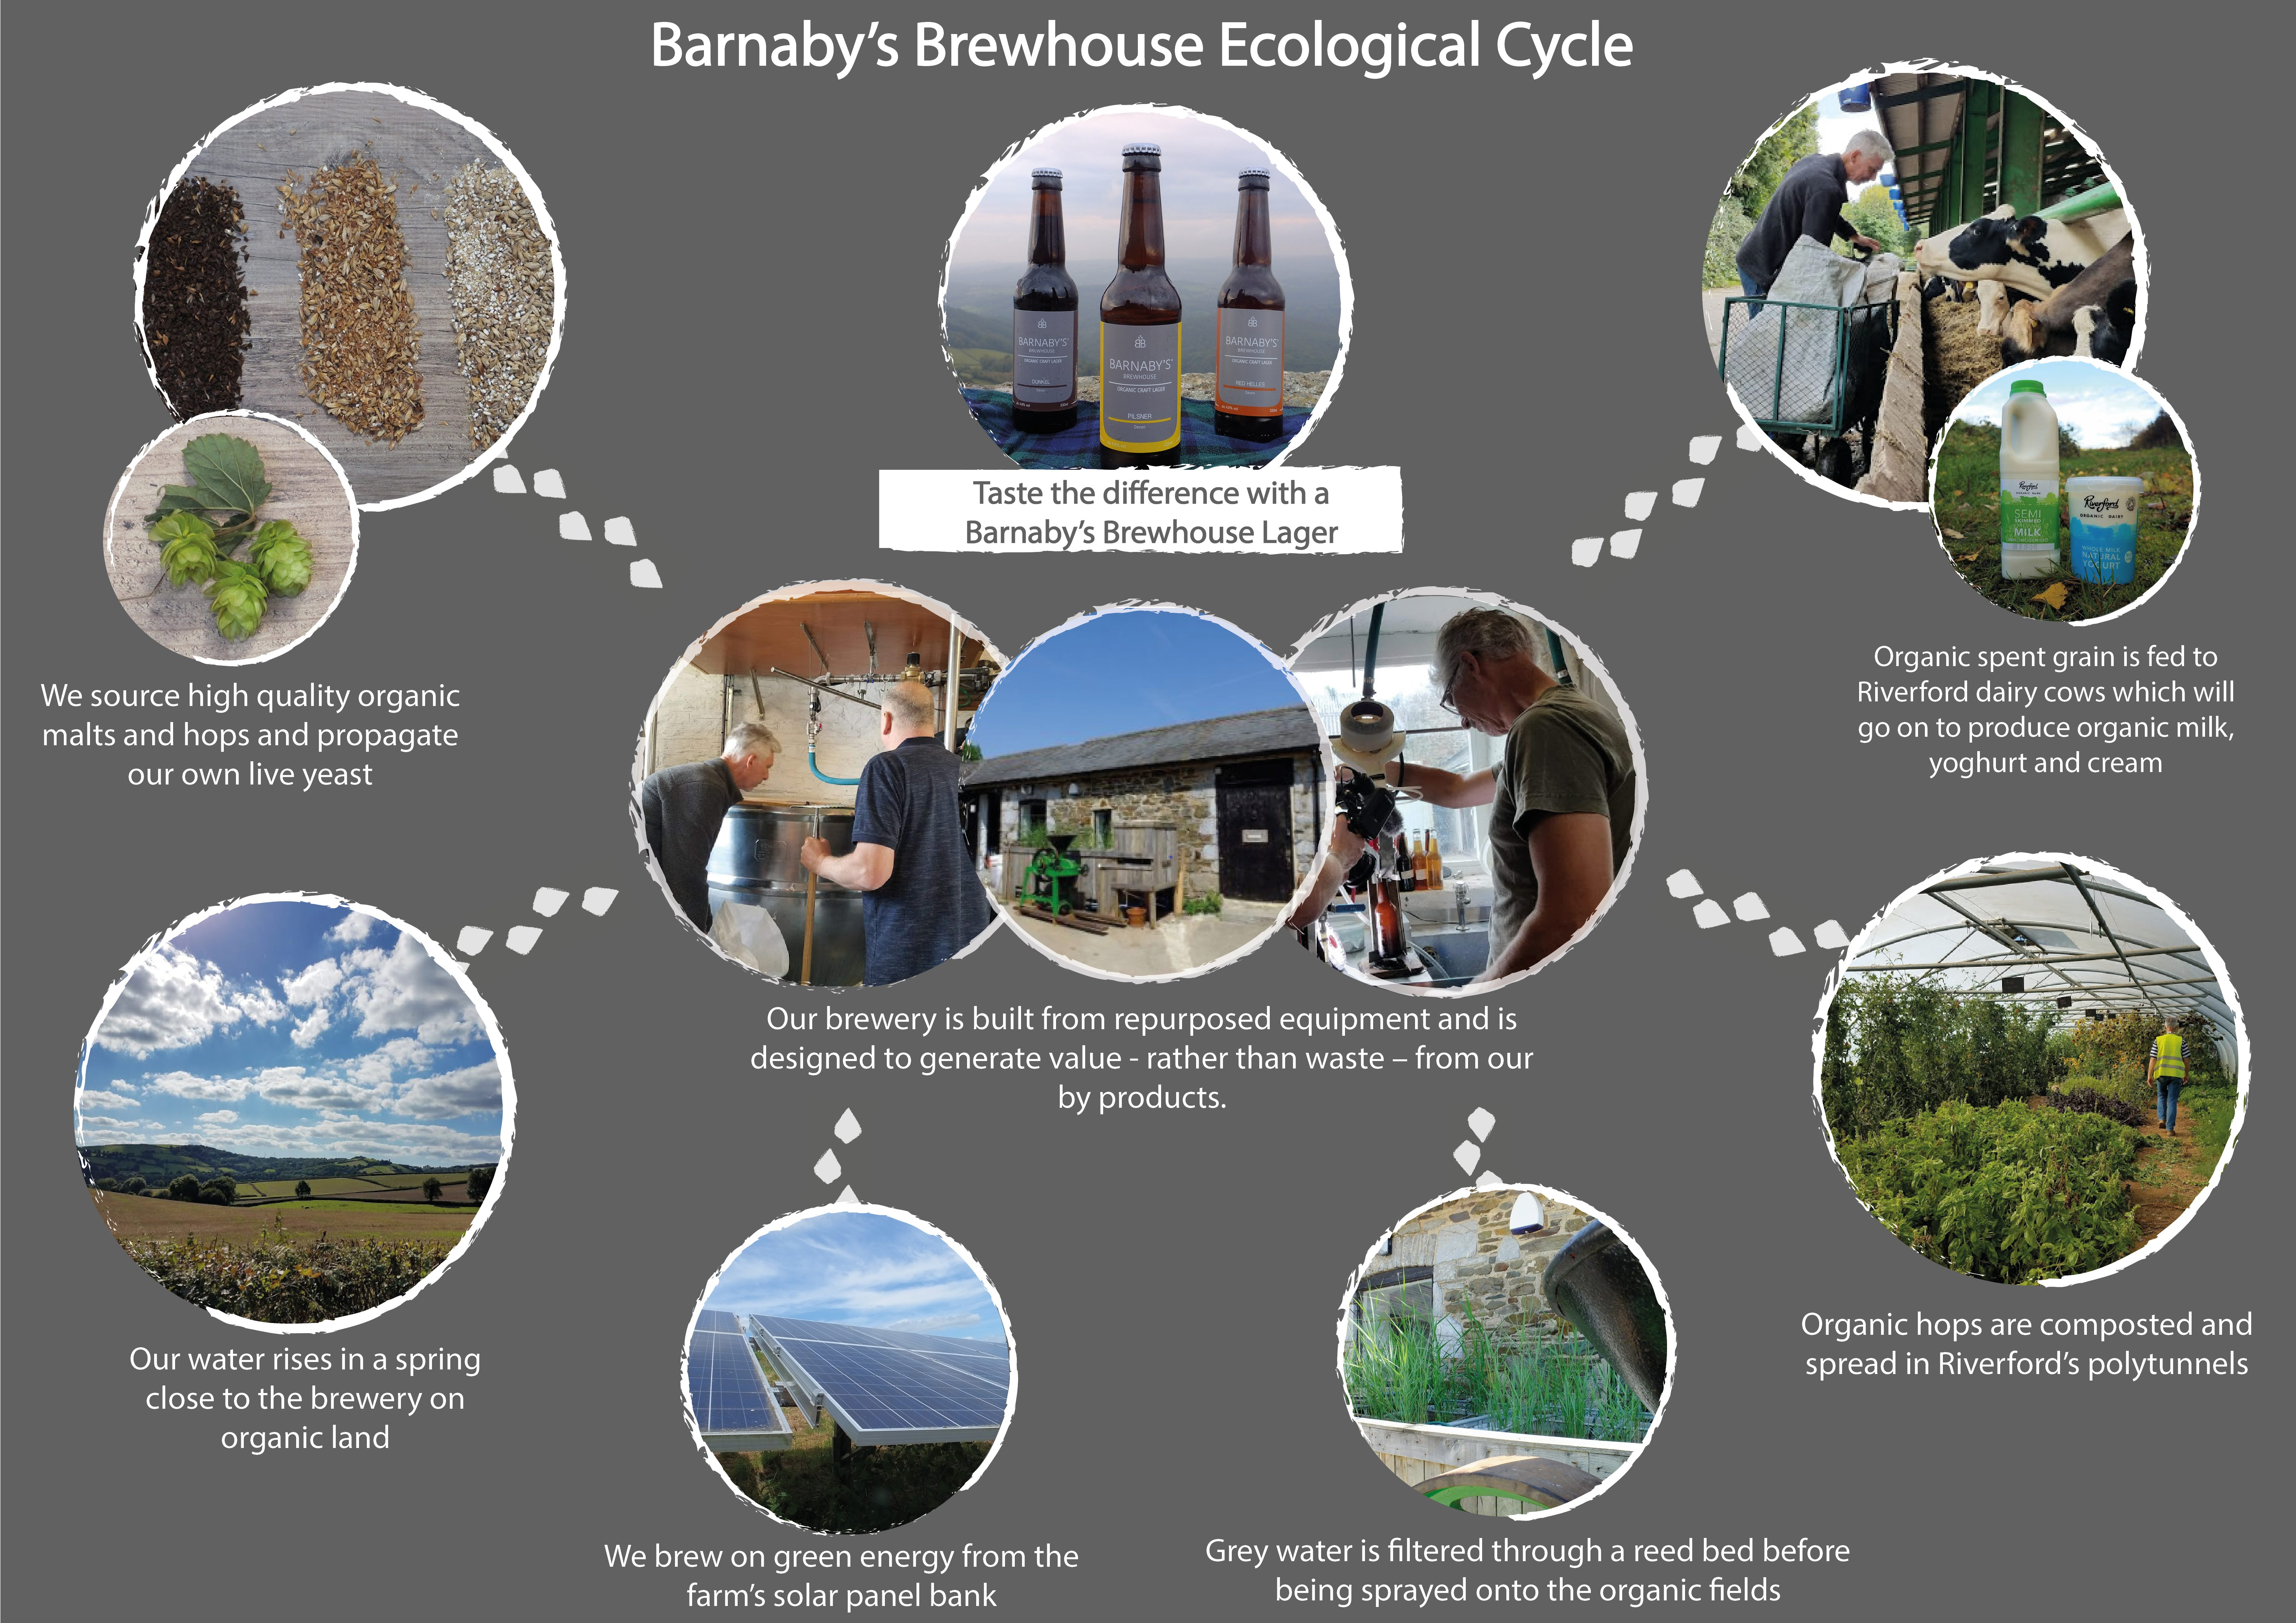 Barnaby's Brewhouse ecological cycle